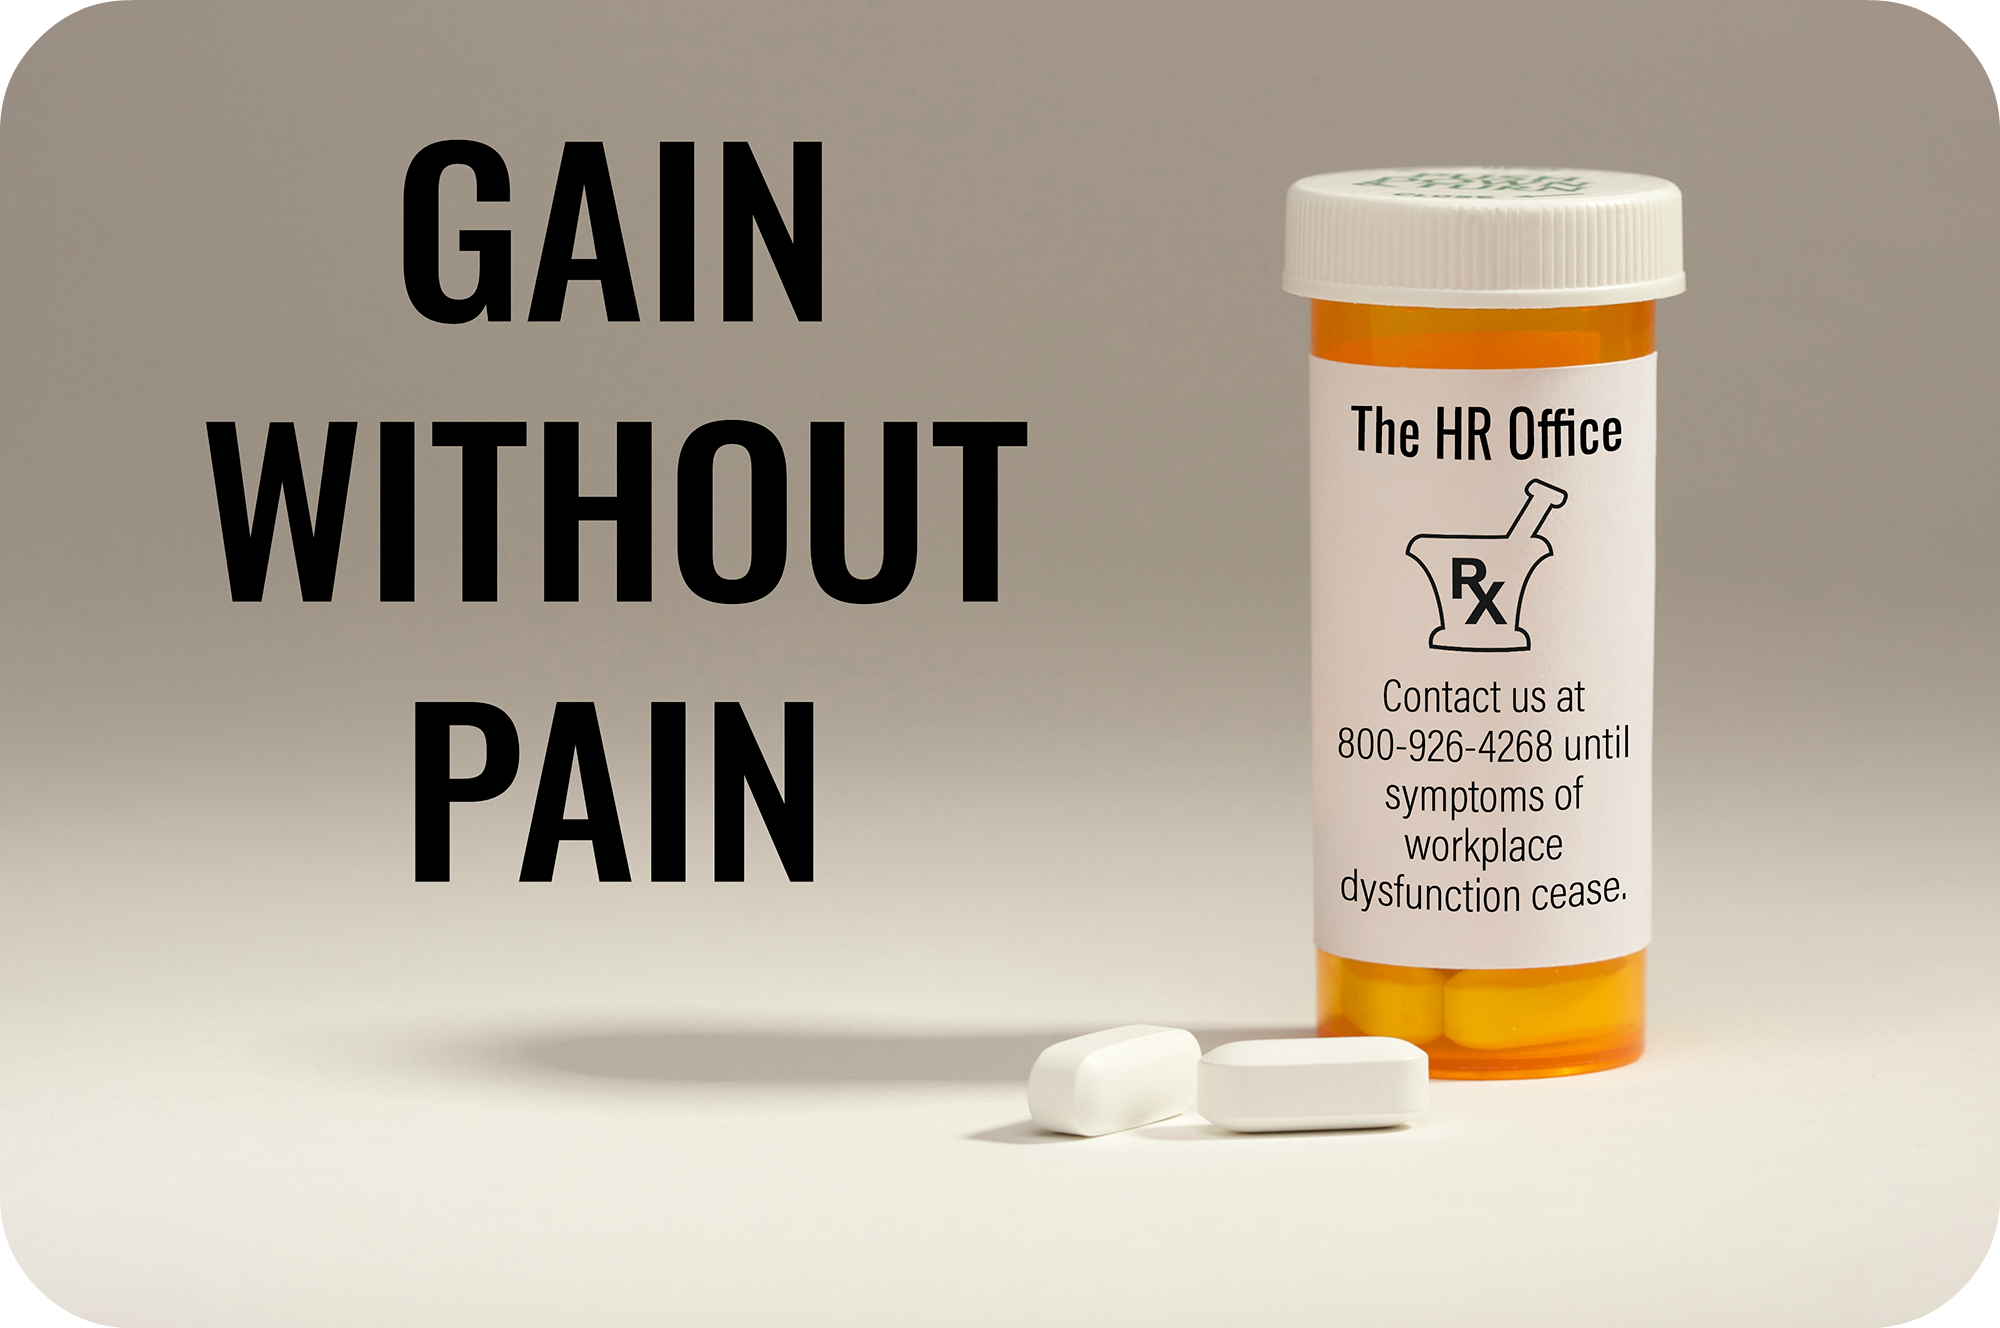 The HR Office: Gain Without Pain